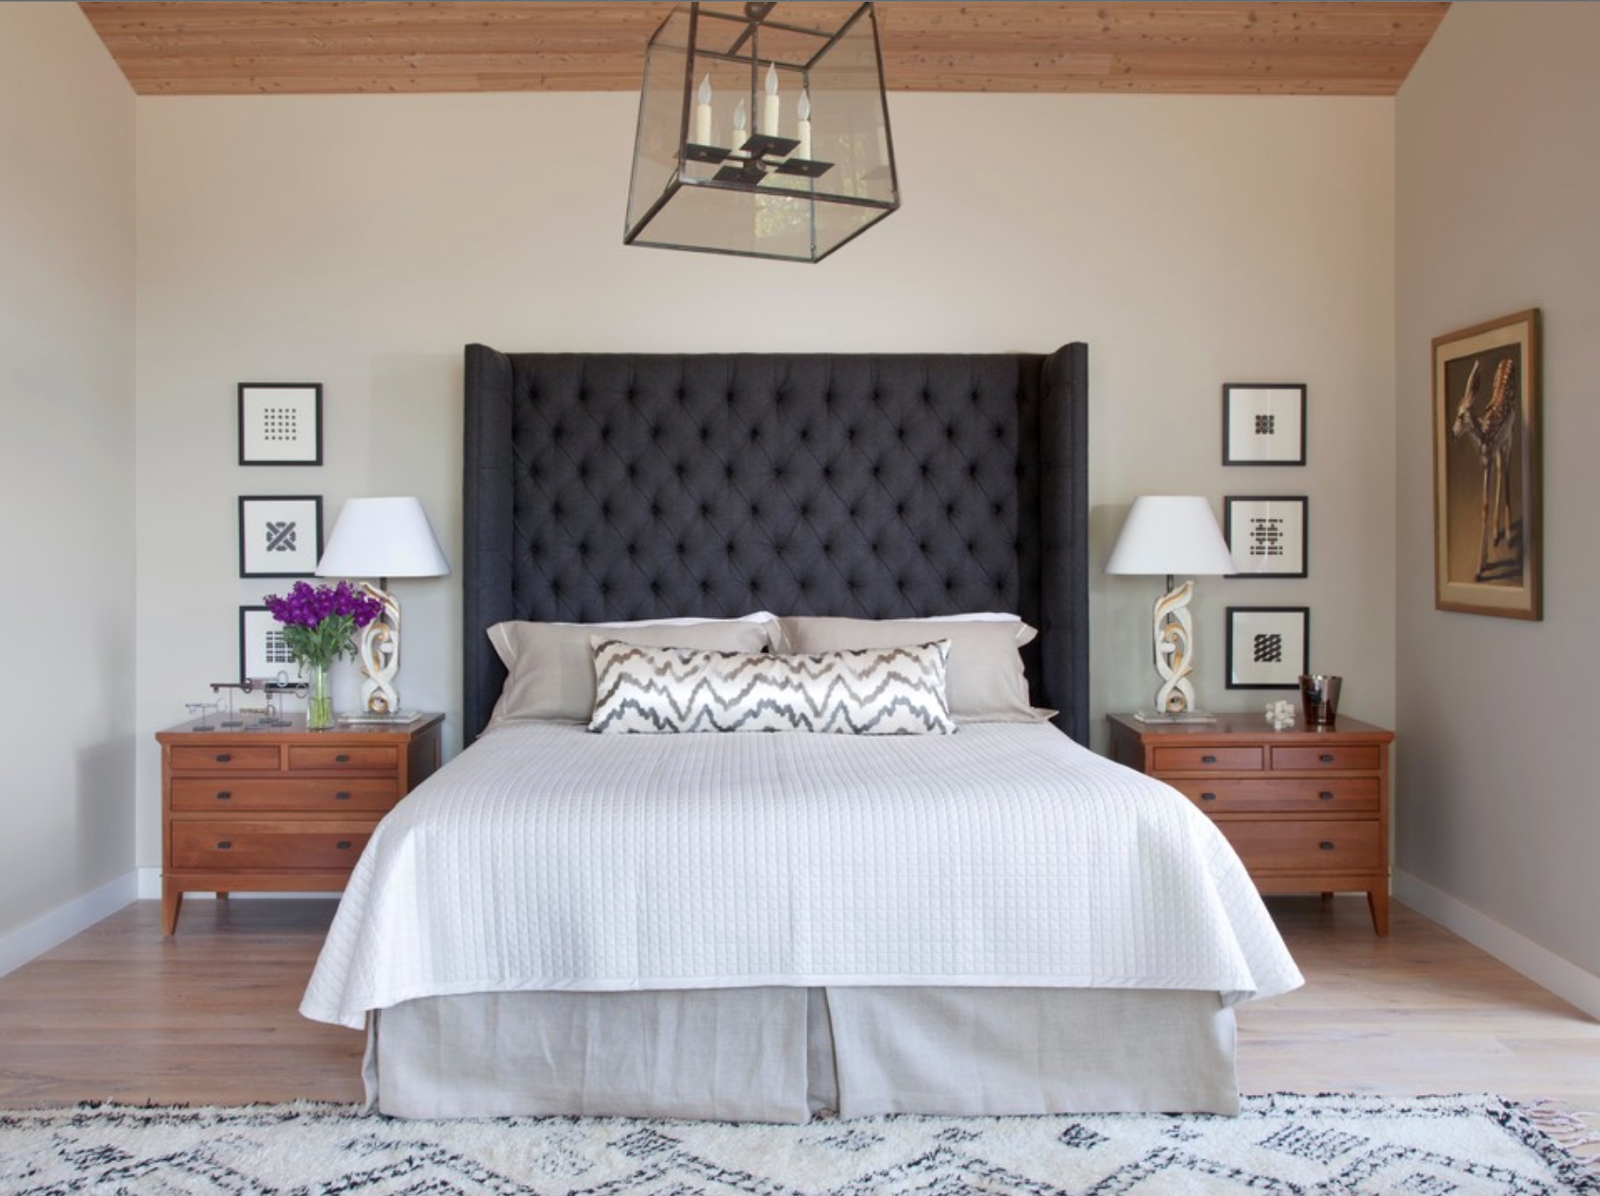 Loving The Lumbar Gray Upholstered Headboard Upholstered Headboard Master Bedroom Headboard Ideas